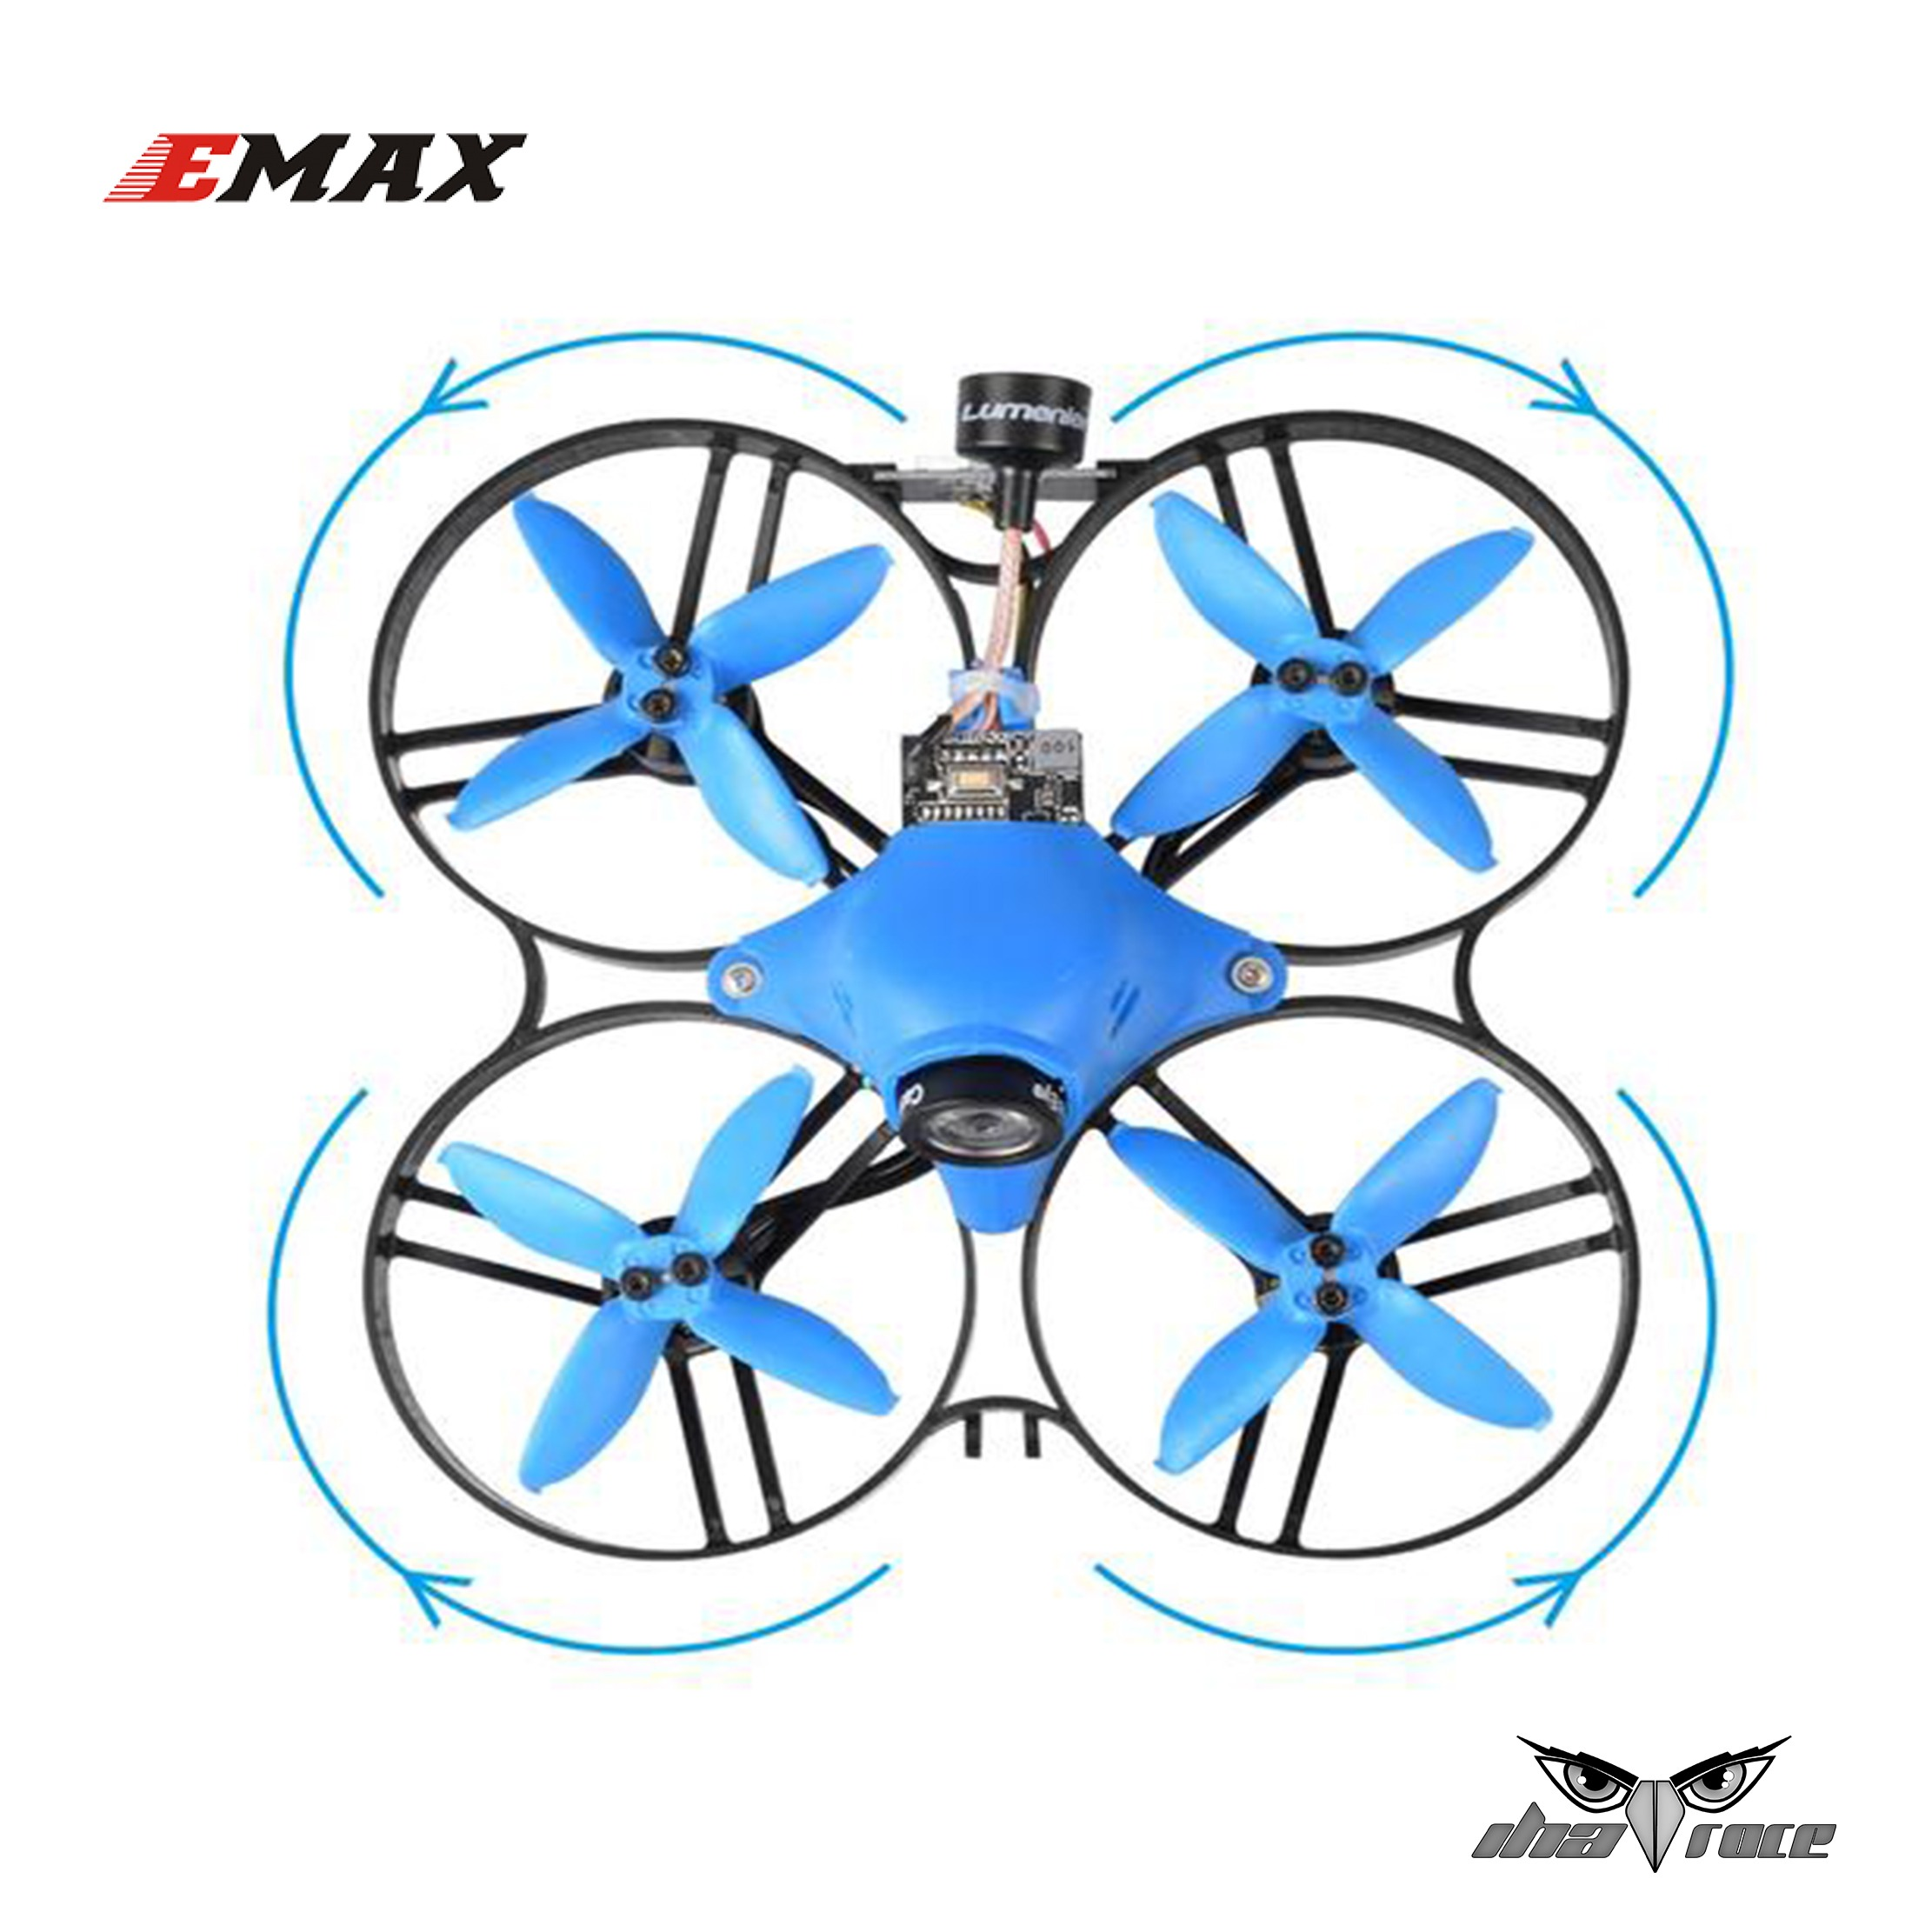 "Hélices Emax 2"" 4 Palas (Eje 1.5 mm)"